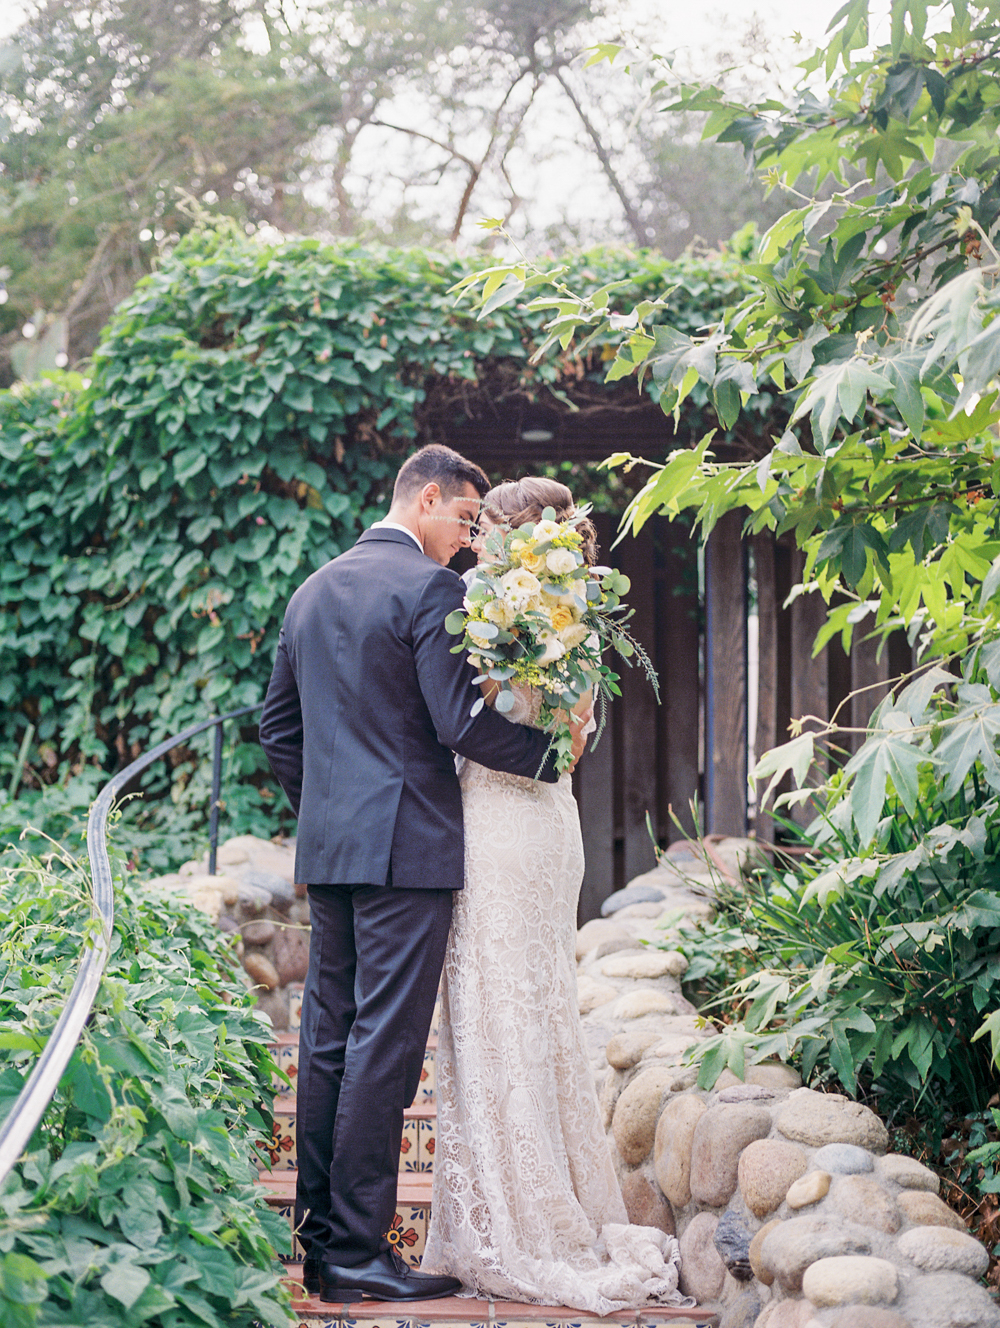 Photography: Heather Anderson Photography // Planner & Designer: Perfect The Event // Workshop Host: Alicia Mink Photography // Florist: Flowers By Cina ...